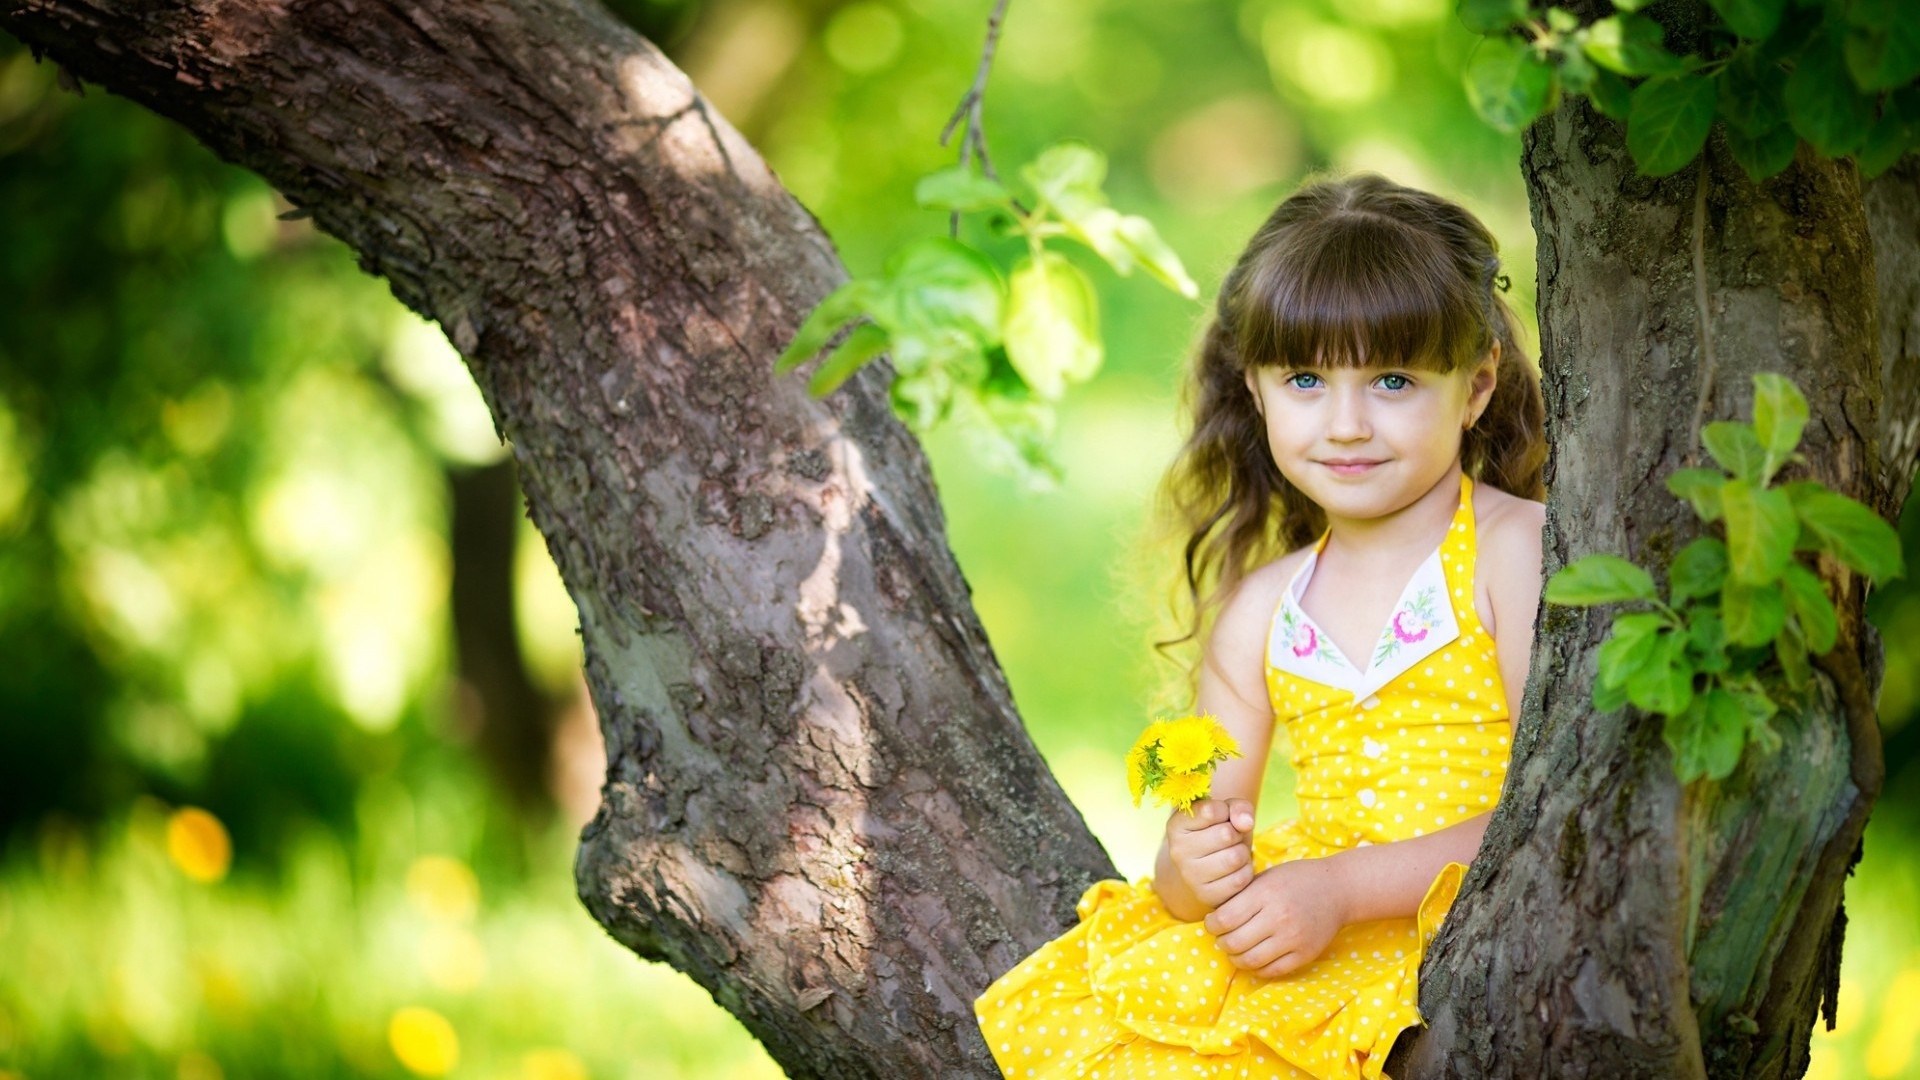 Cute Baby Girl in Yellow Dress Lovely Girl in Yellow Dress